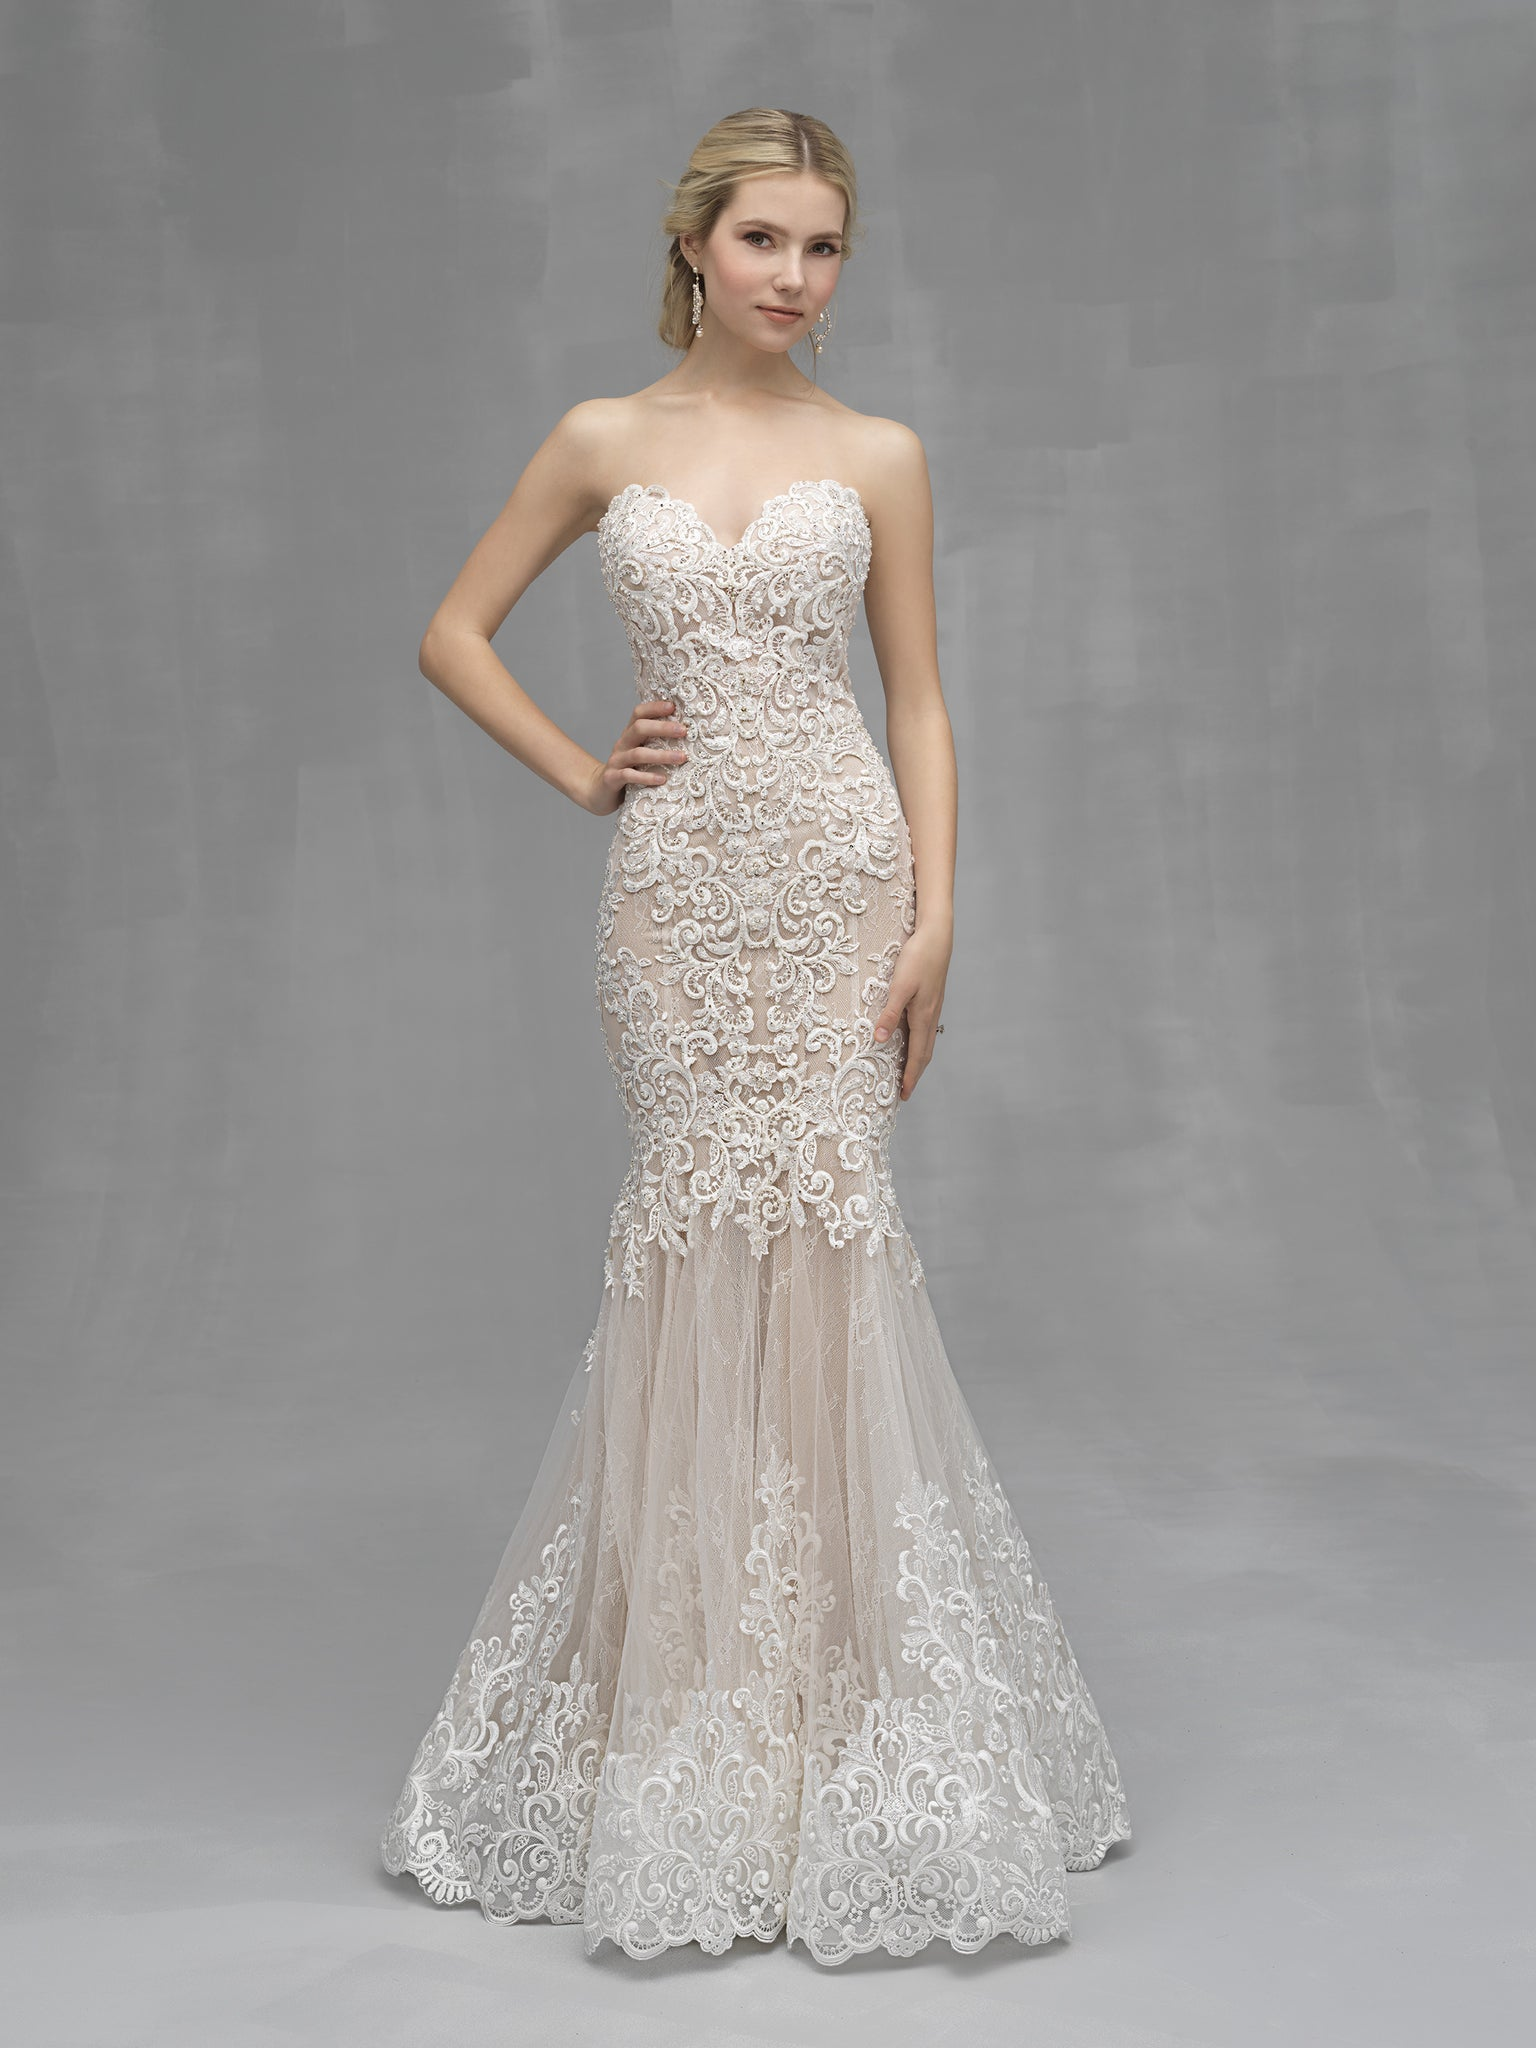 Allure C526 - LEEHWA WEDDING